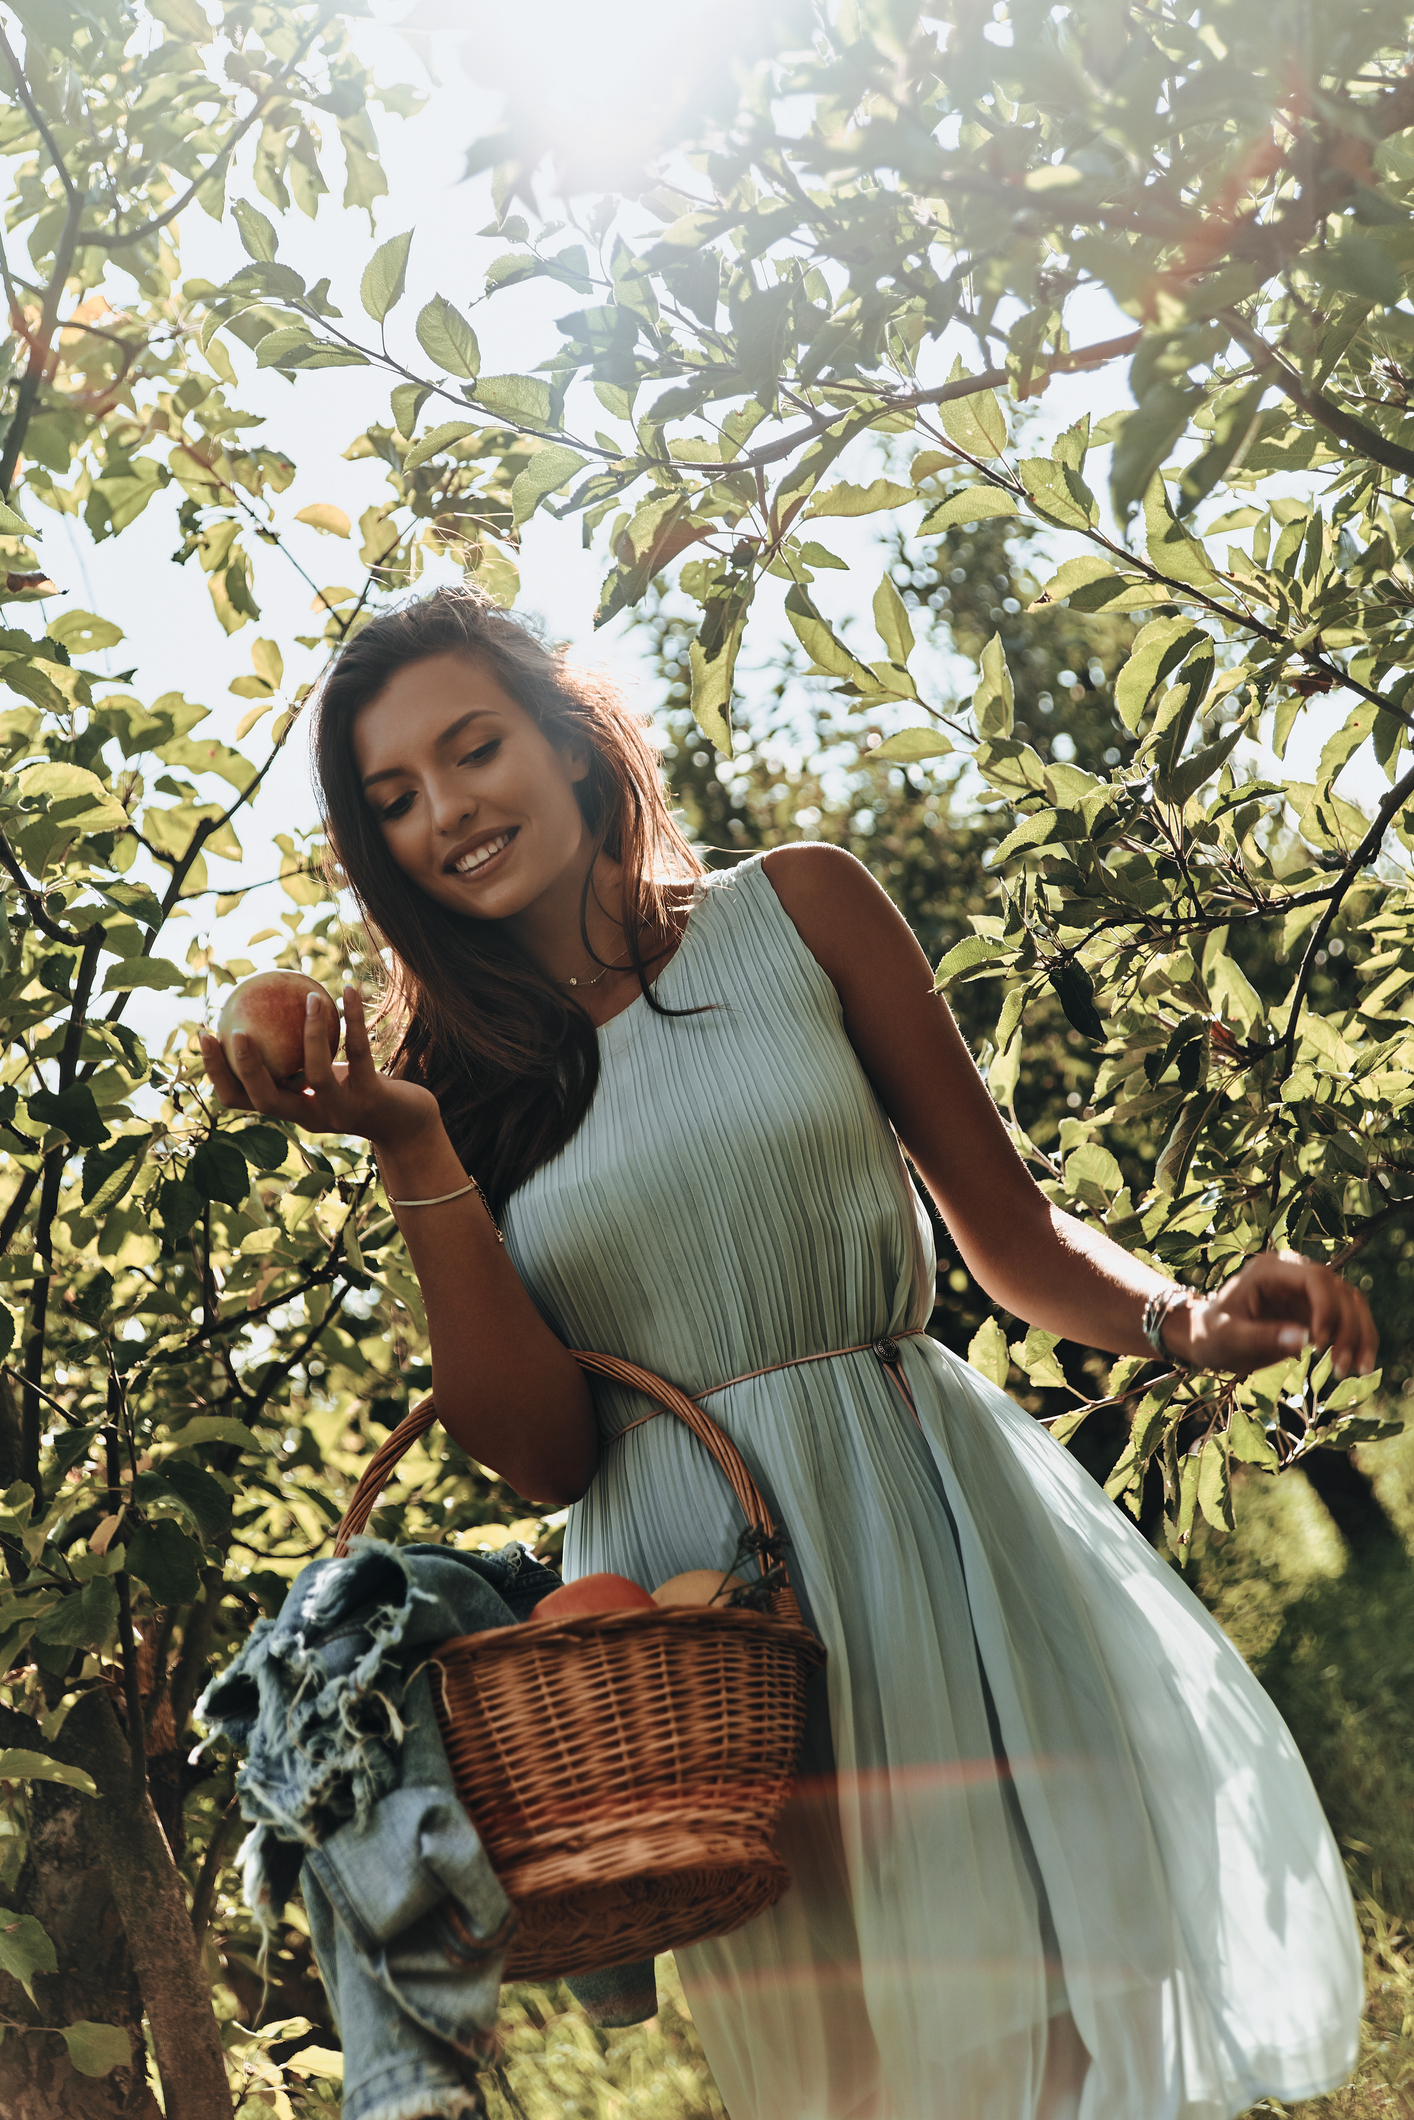 Attractive young woman carrying a basket full of apples and smiling while standing in garden